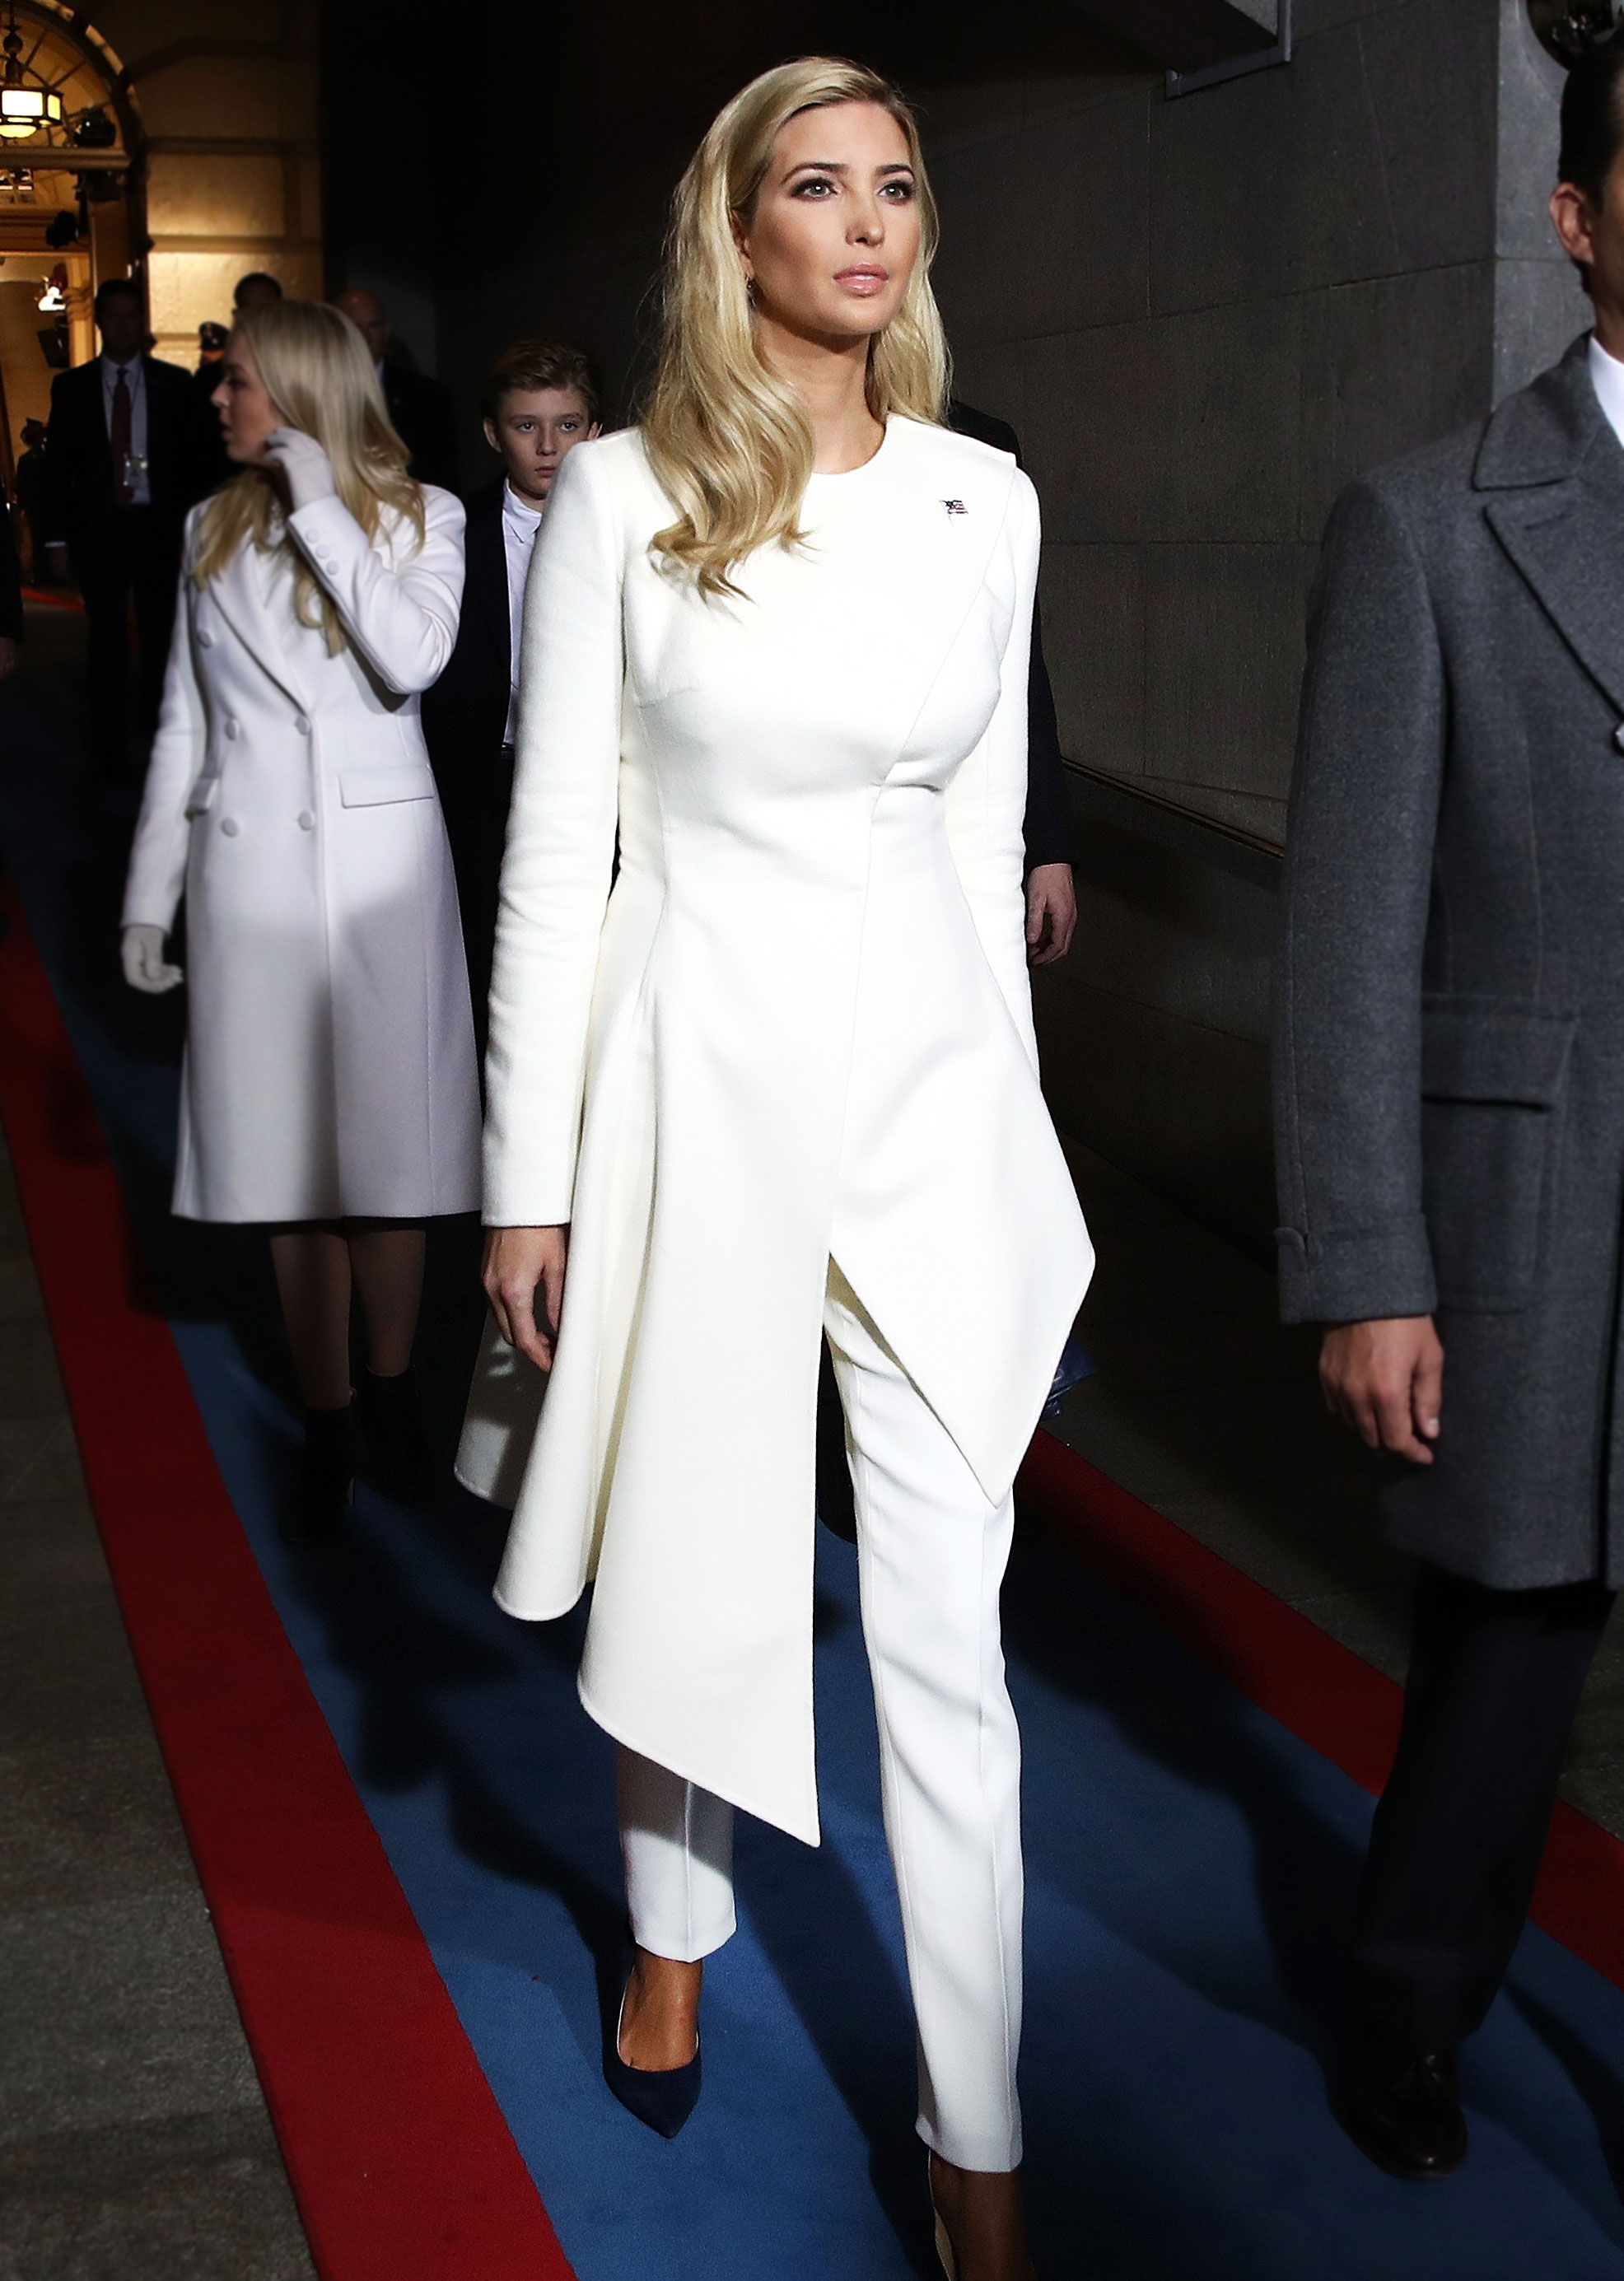 Hillary Clinton, Ivanka Trump Wear White Pantsuits to the Inauguration